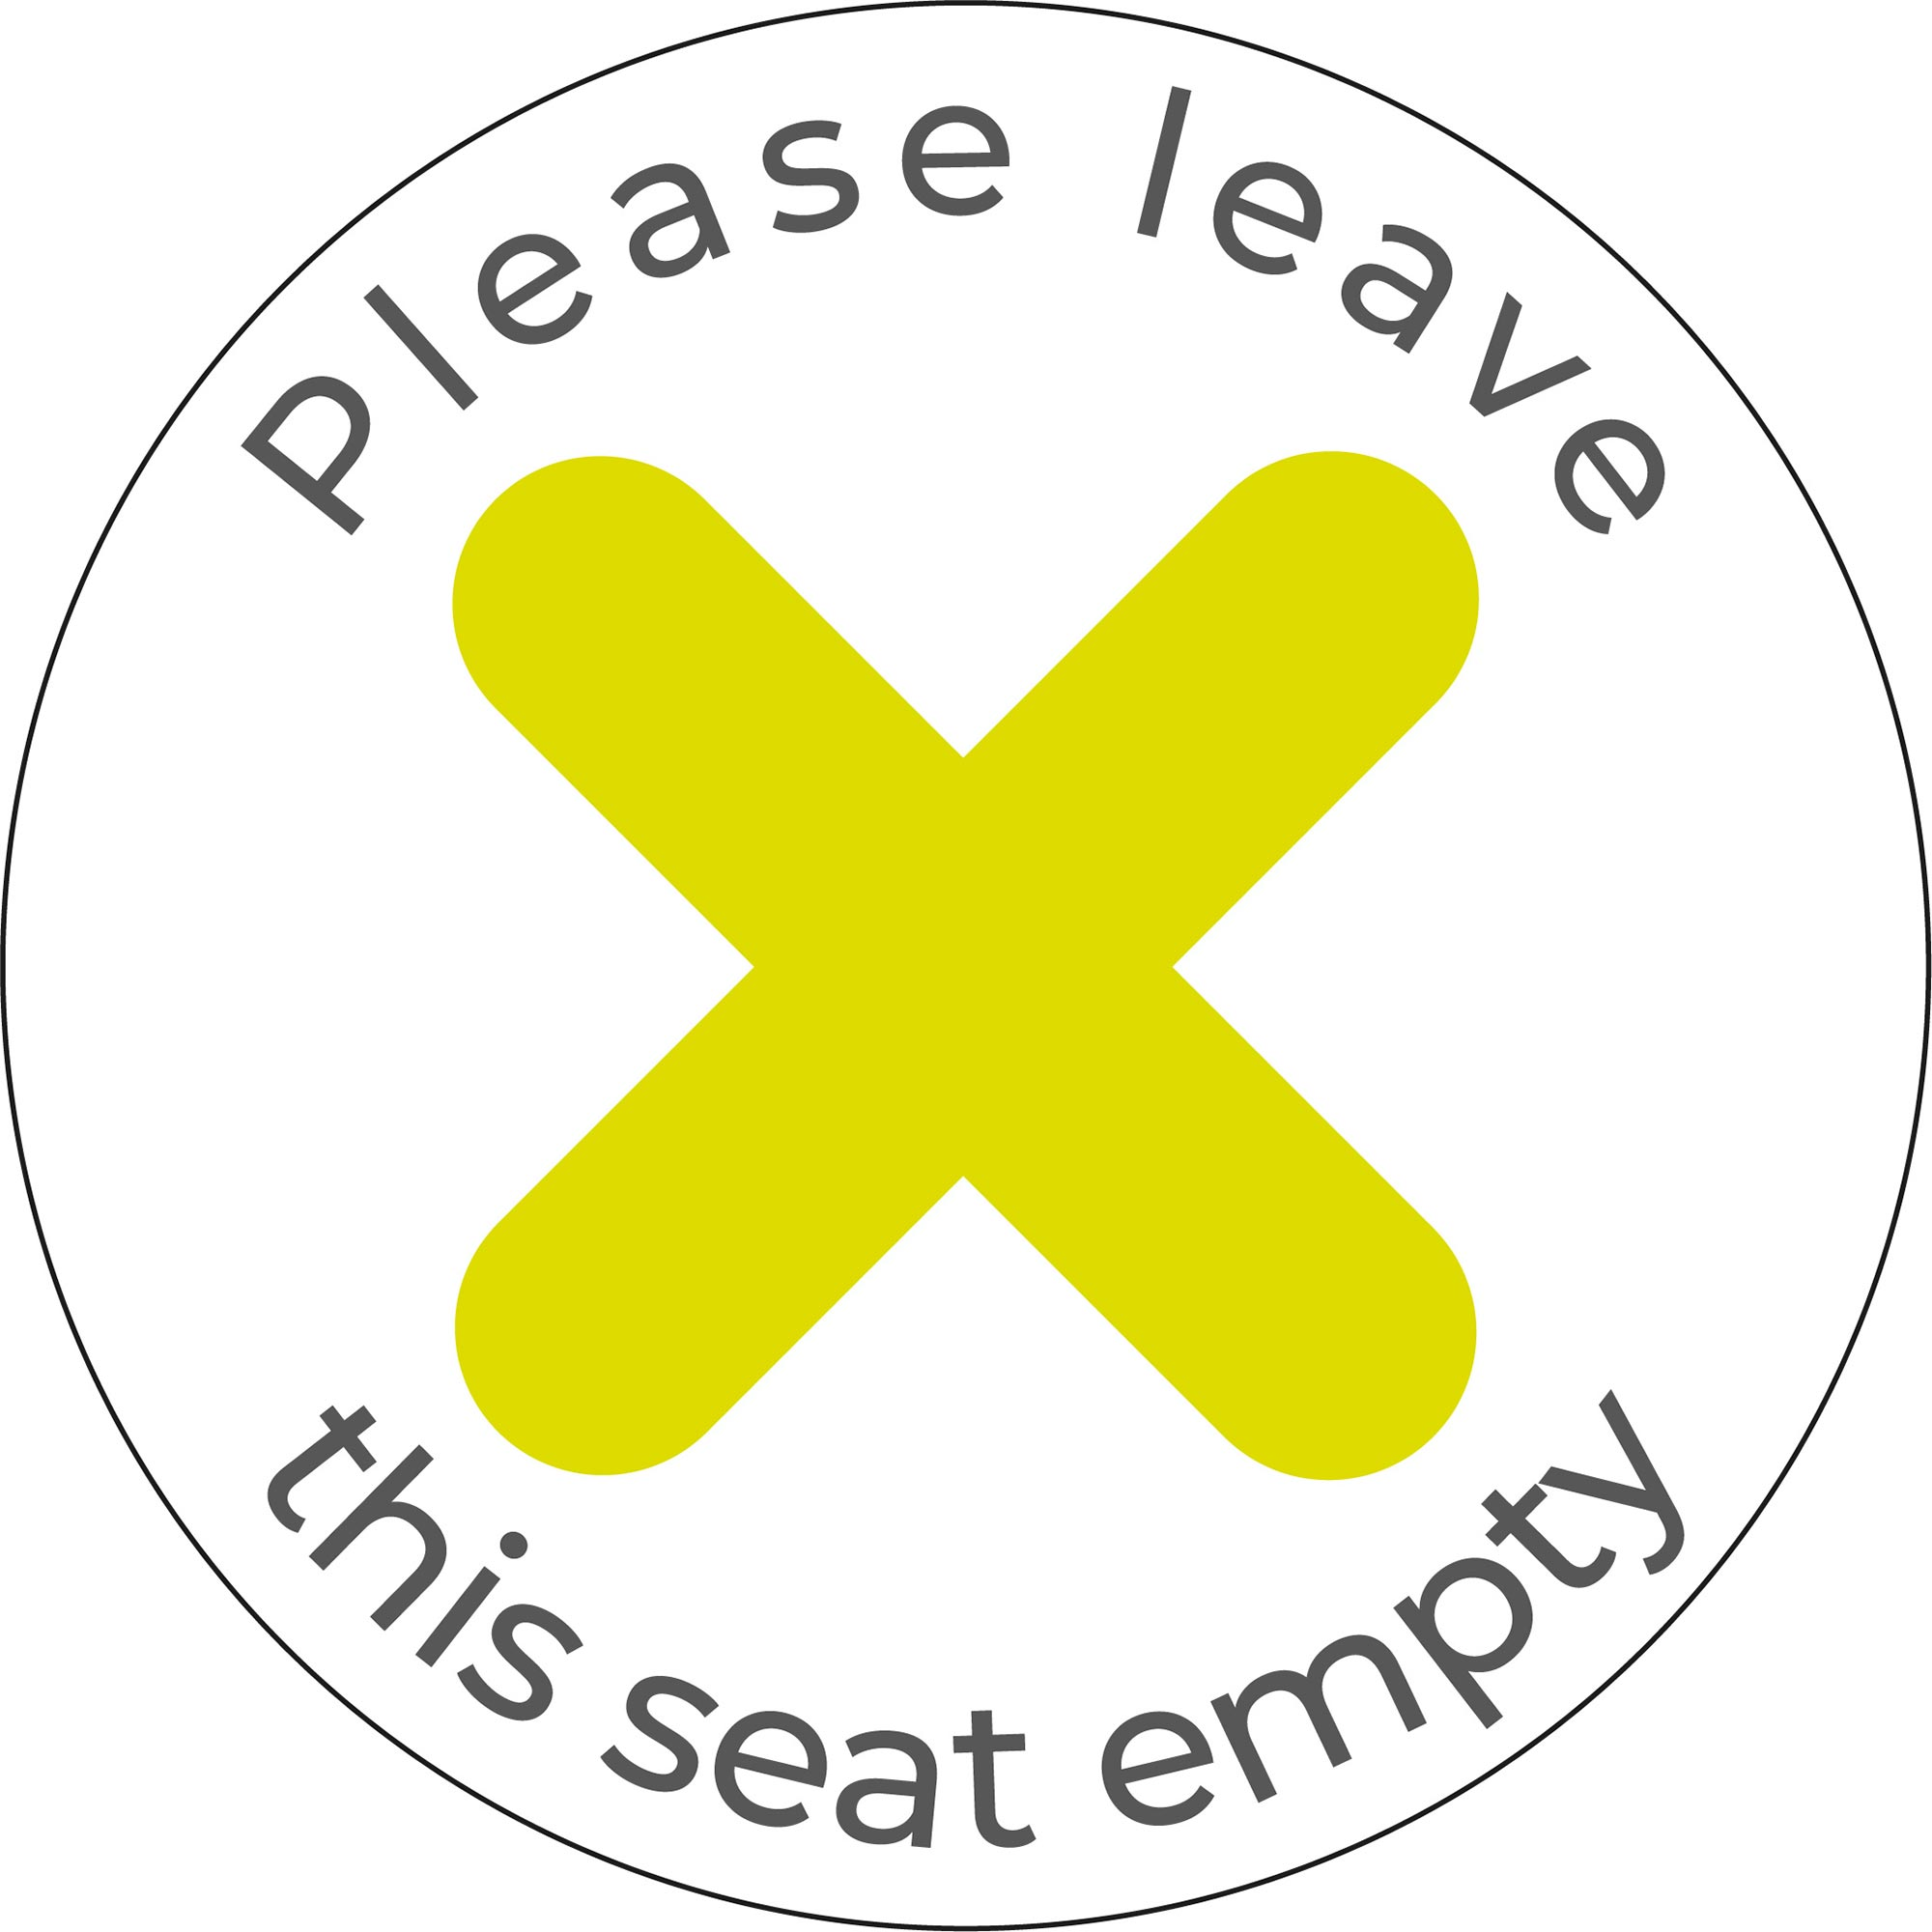 Please Leave Seat Empty - White Sticker